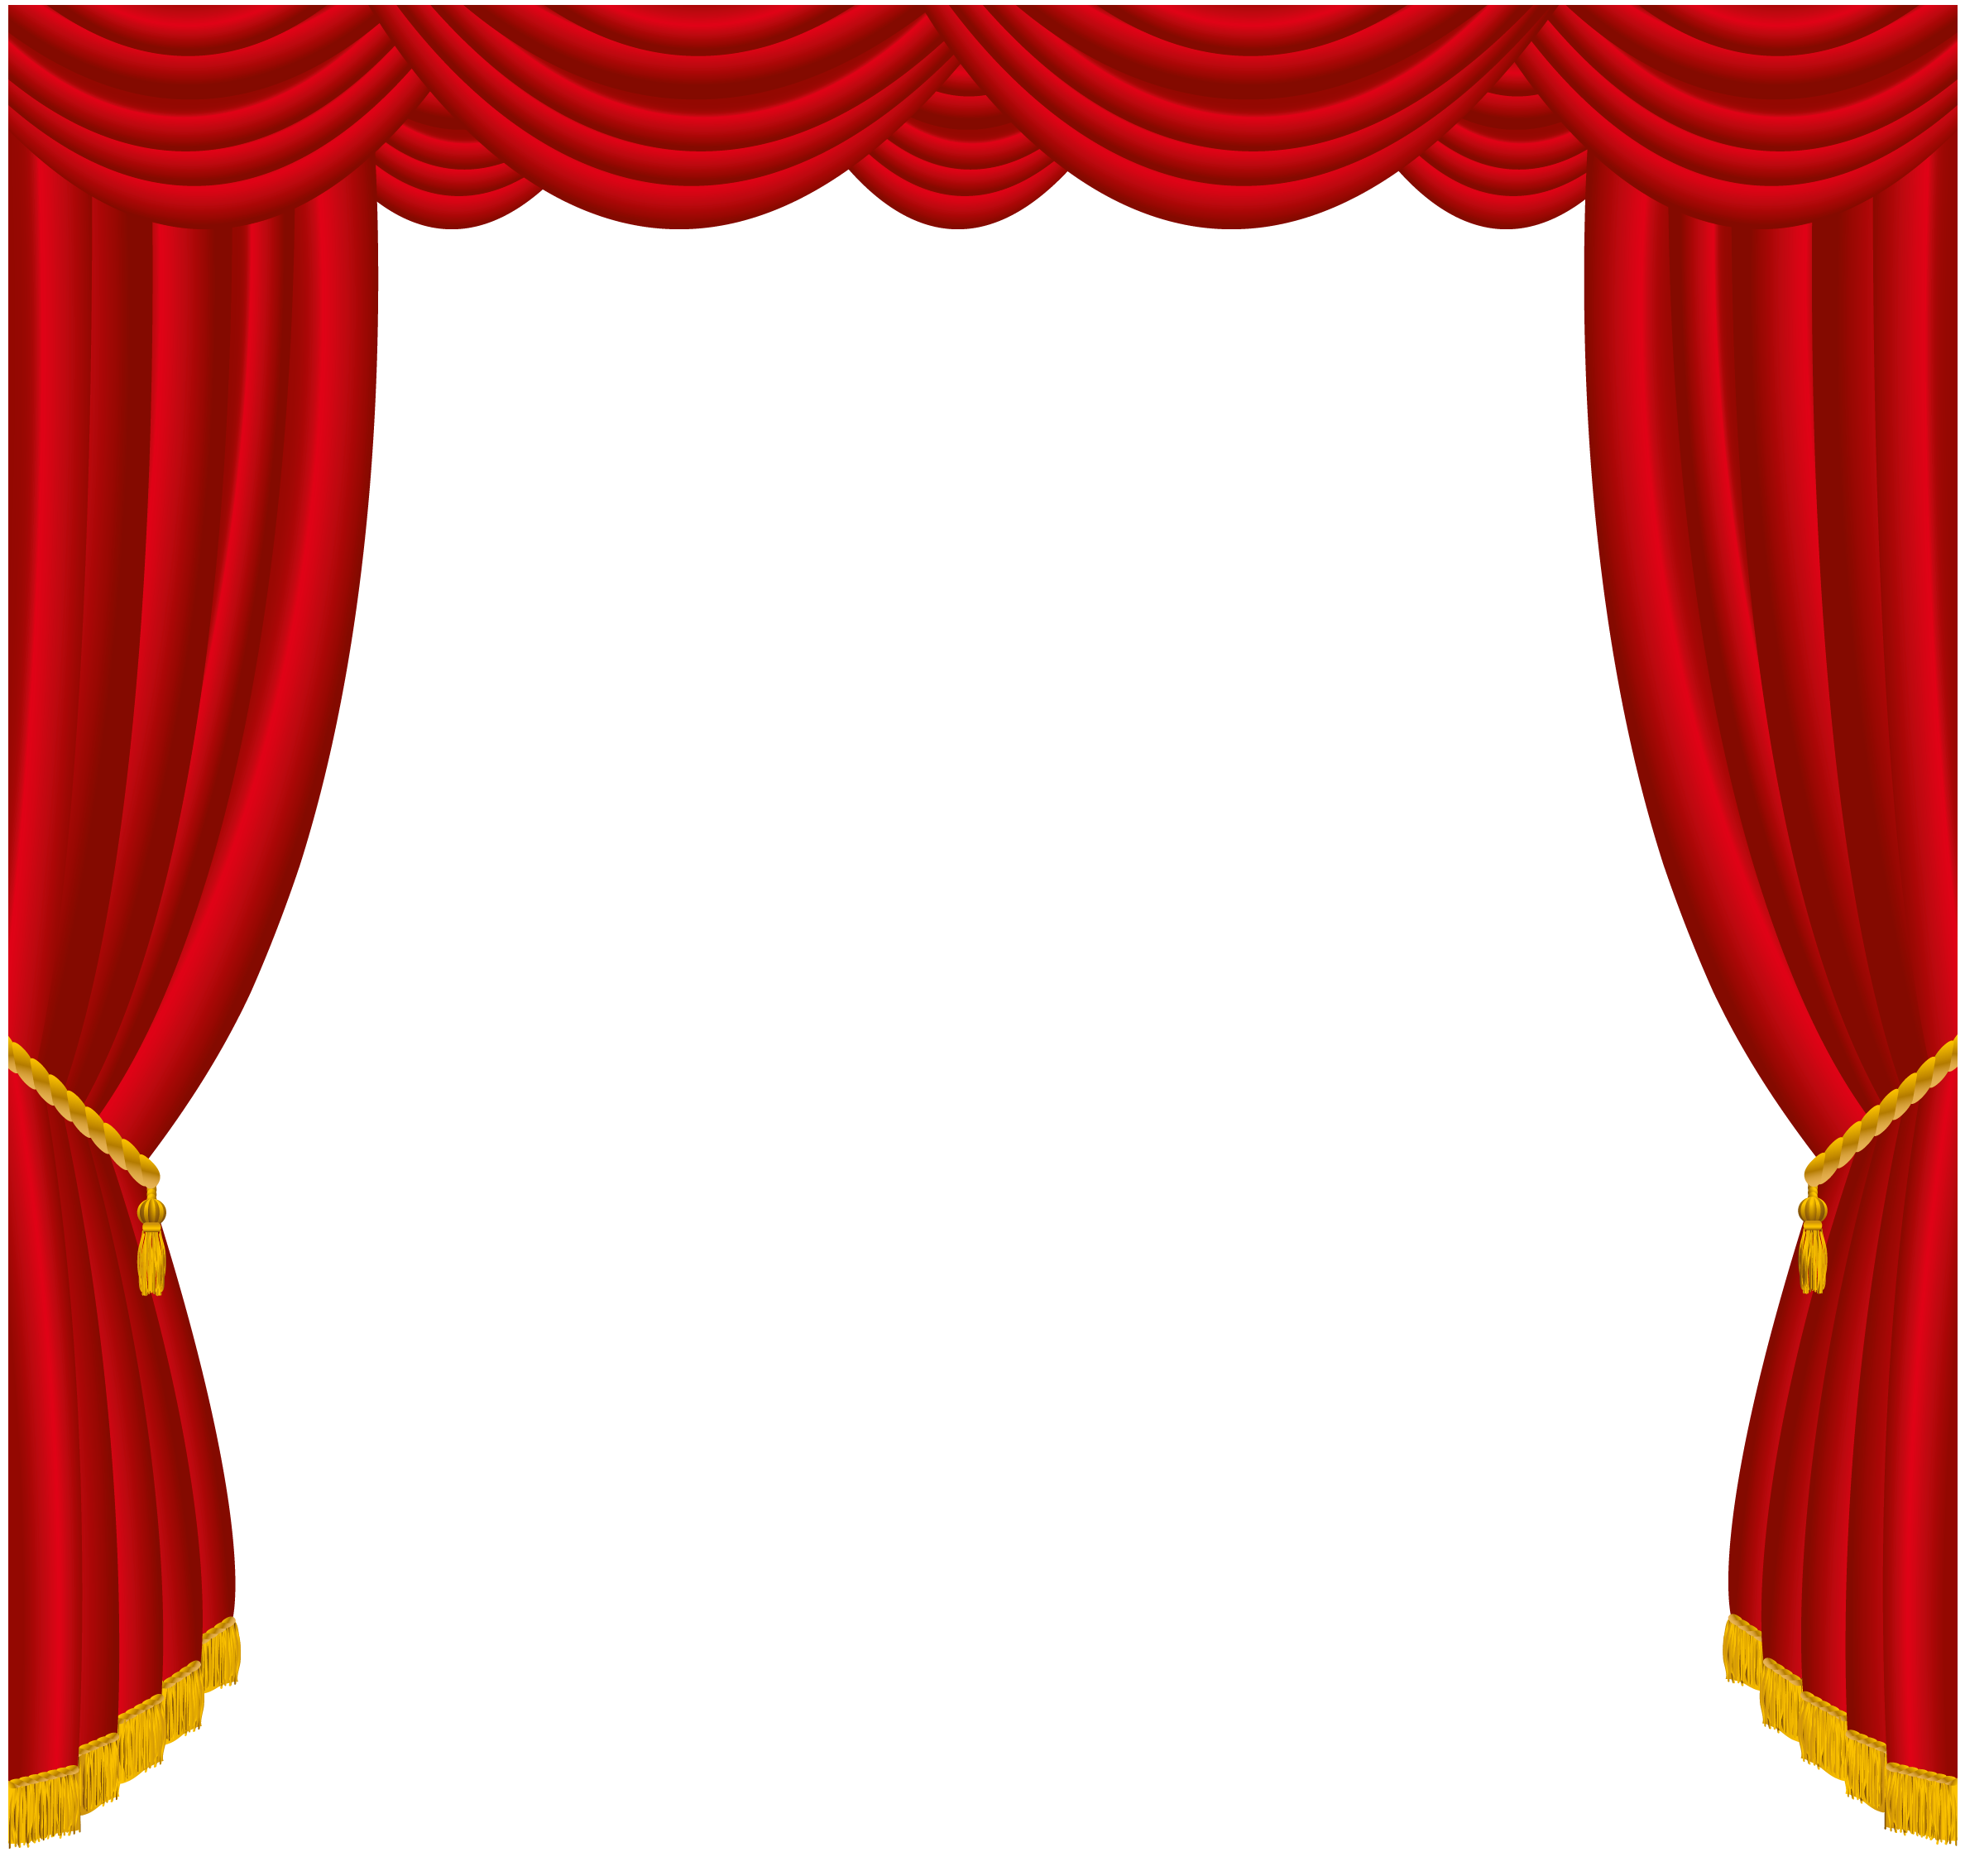 Curtains clipart. Transparent red decor png